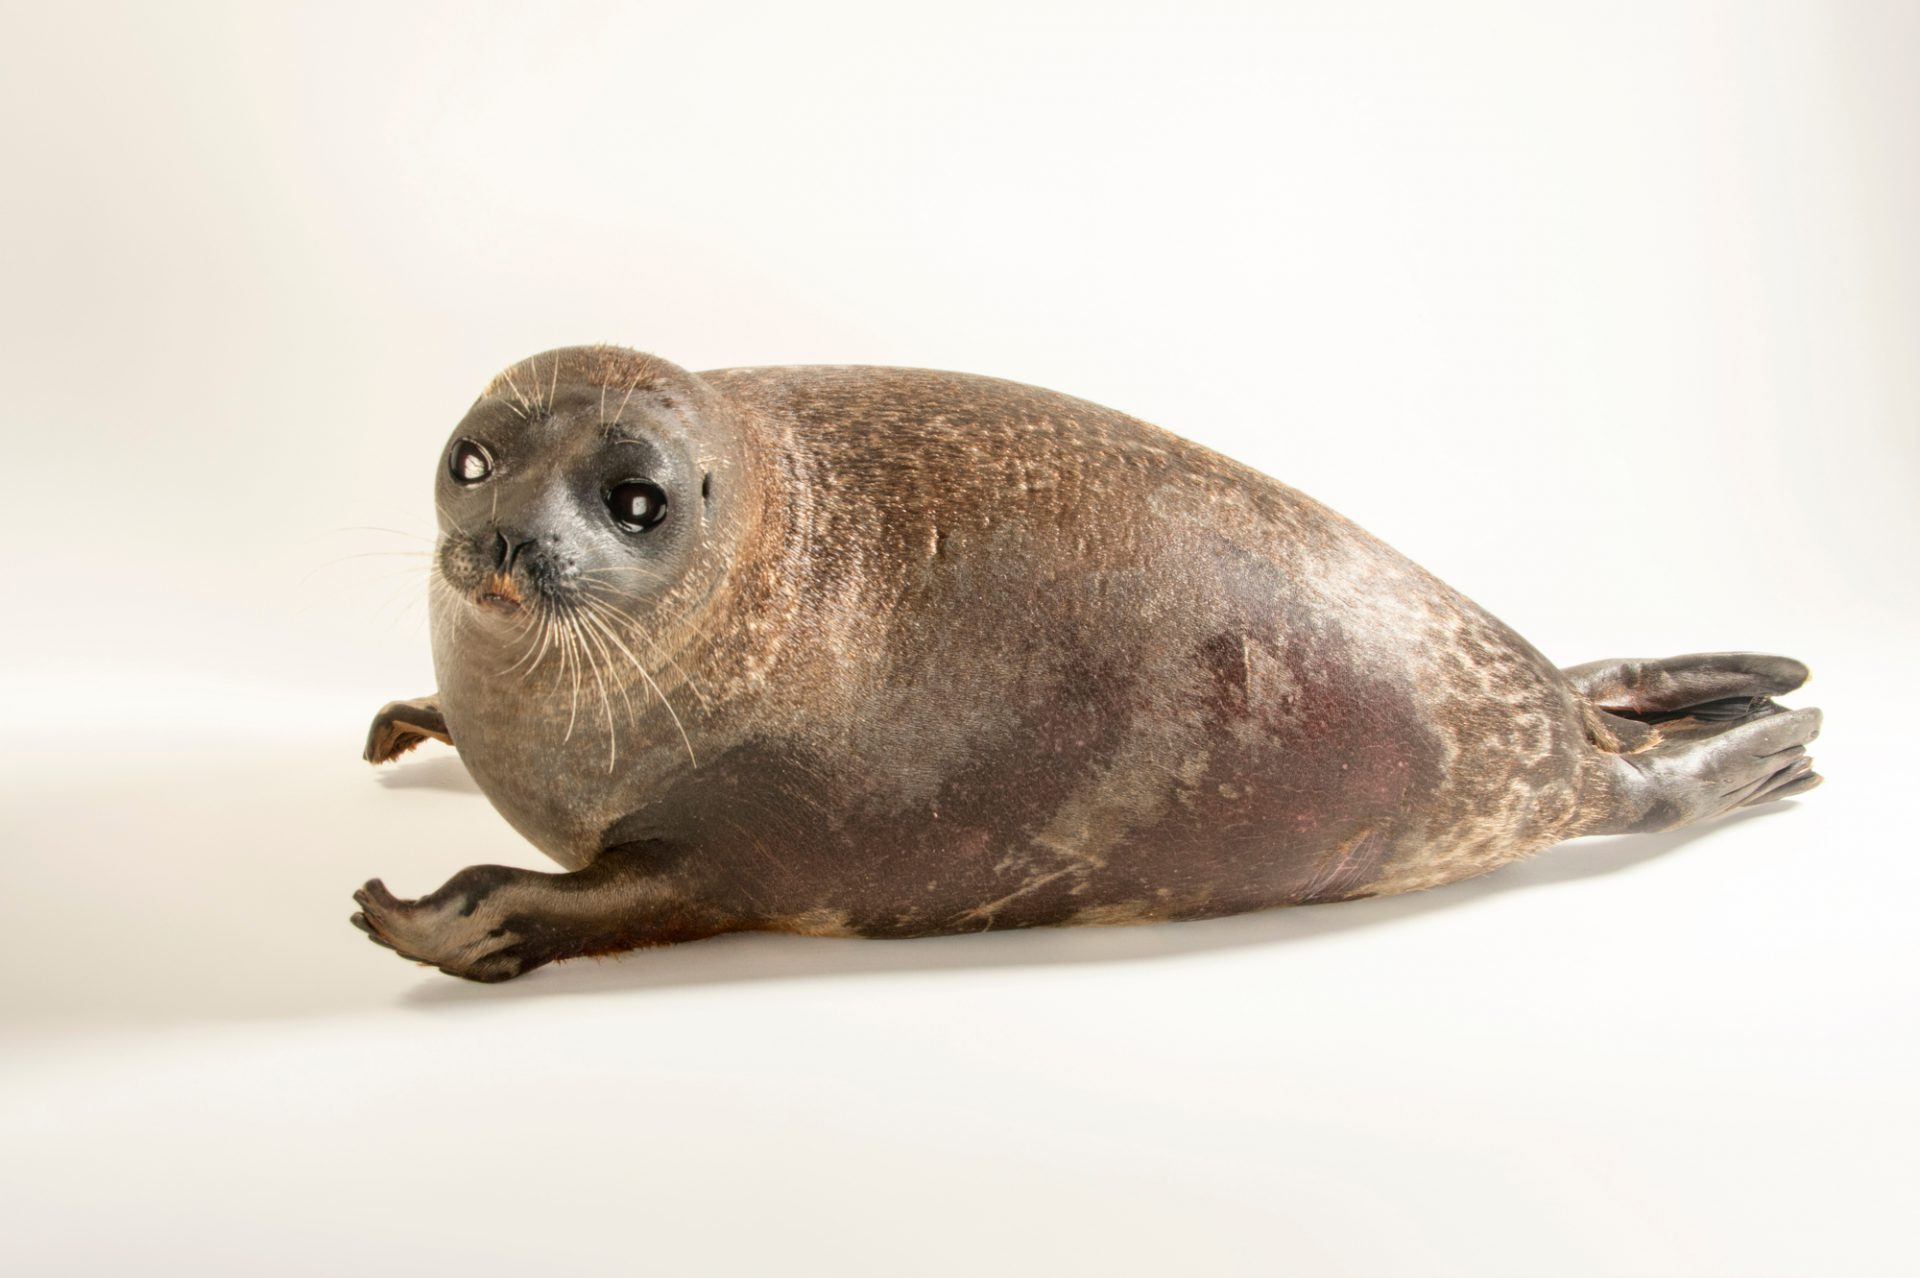 Photo: Pimniq, an 18-month-old ringed seal (Pusa hispida) at the Alaska SeaLife Center in Seward, AK.